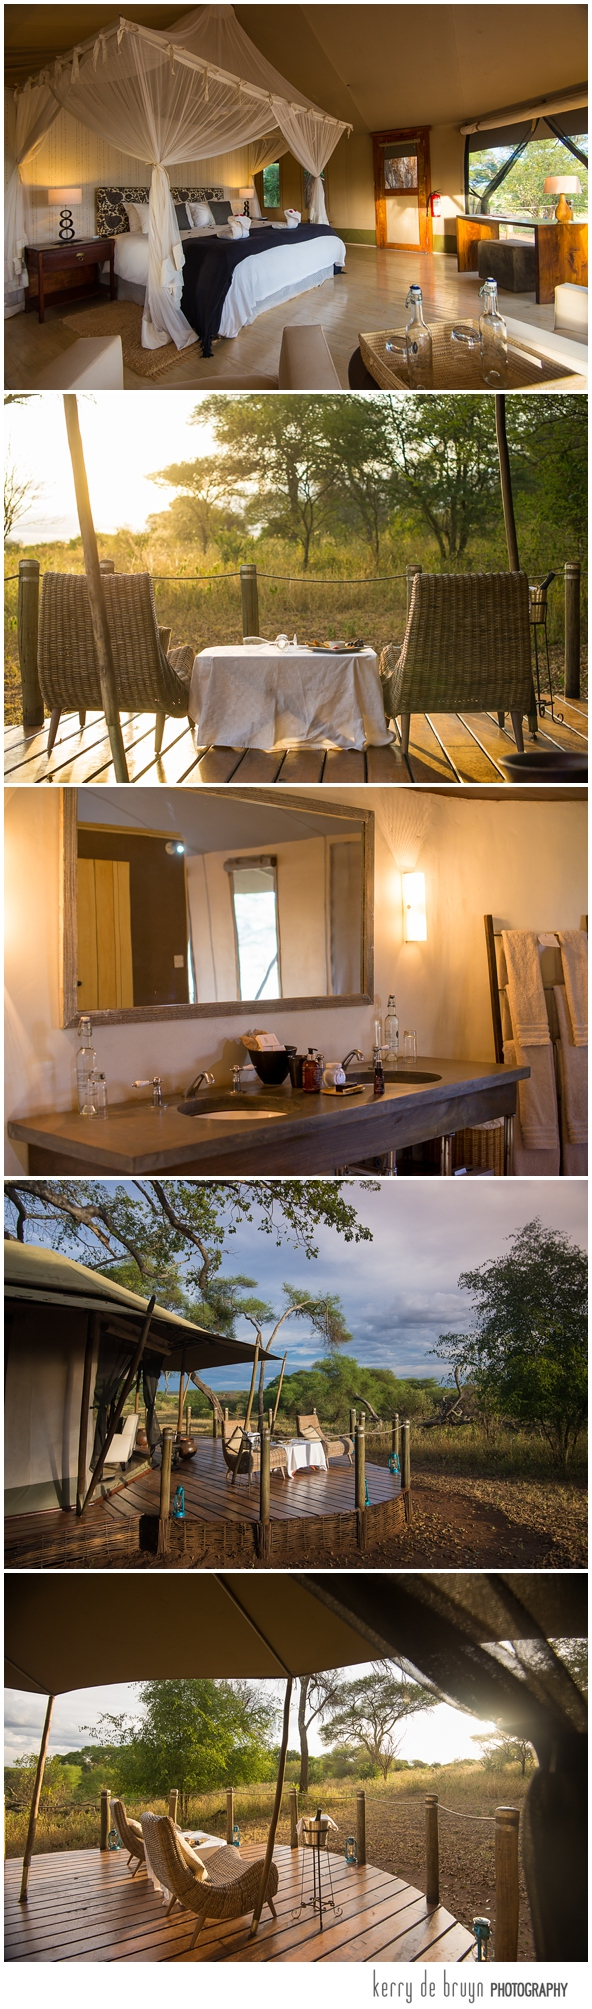 Swala Sanctuary retreats photography